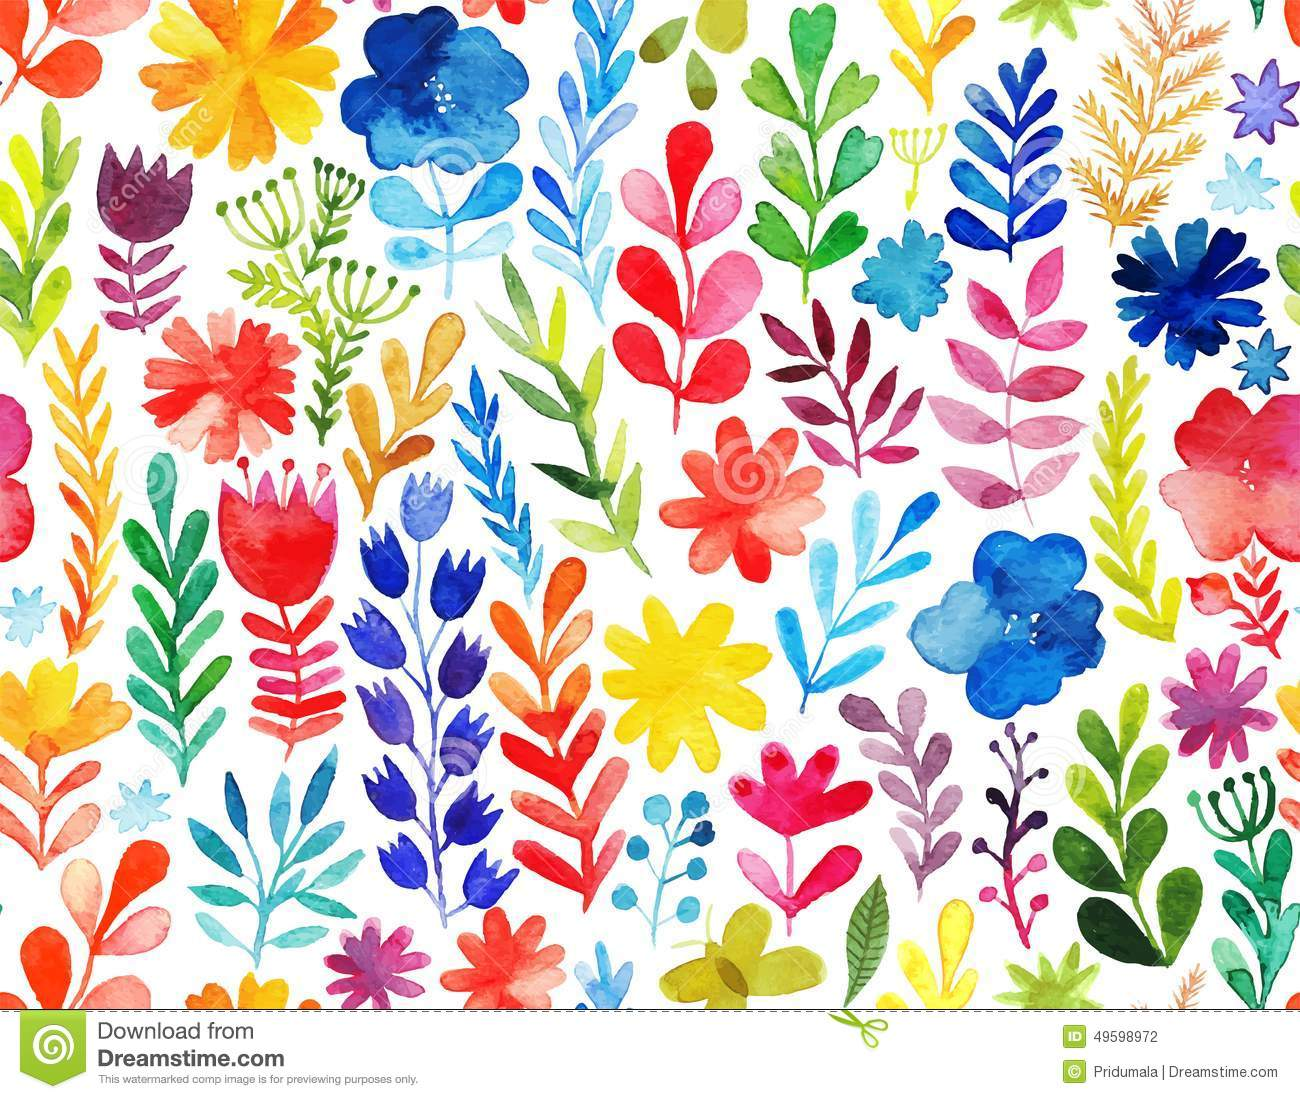 Vector pattern with flowers and plants. Floral decor. Original floral seamless background